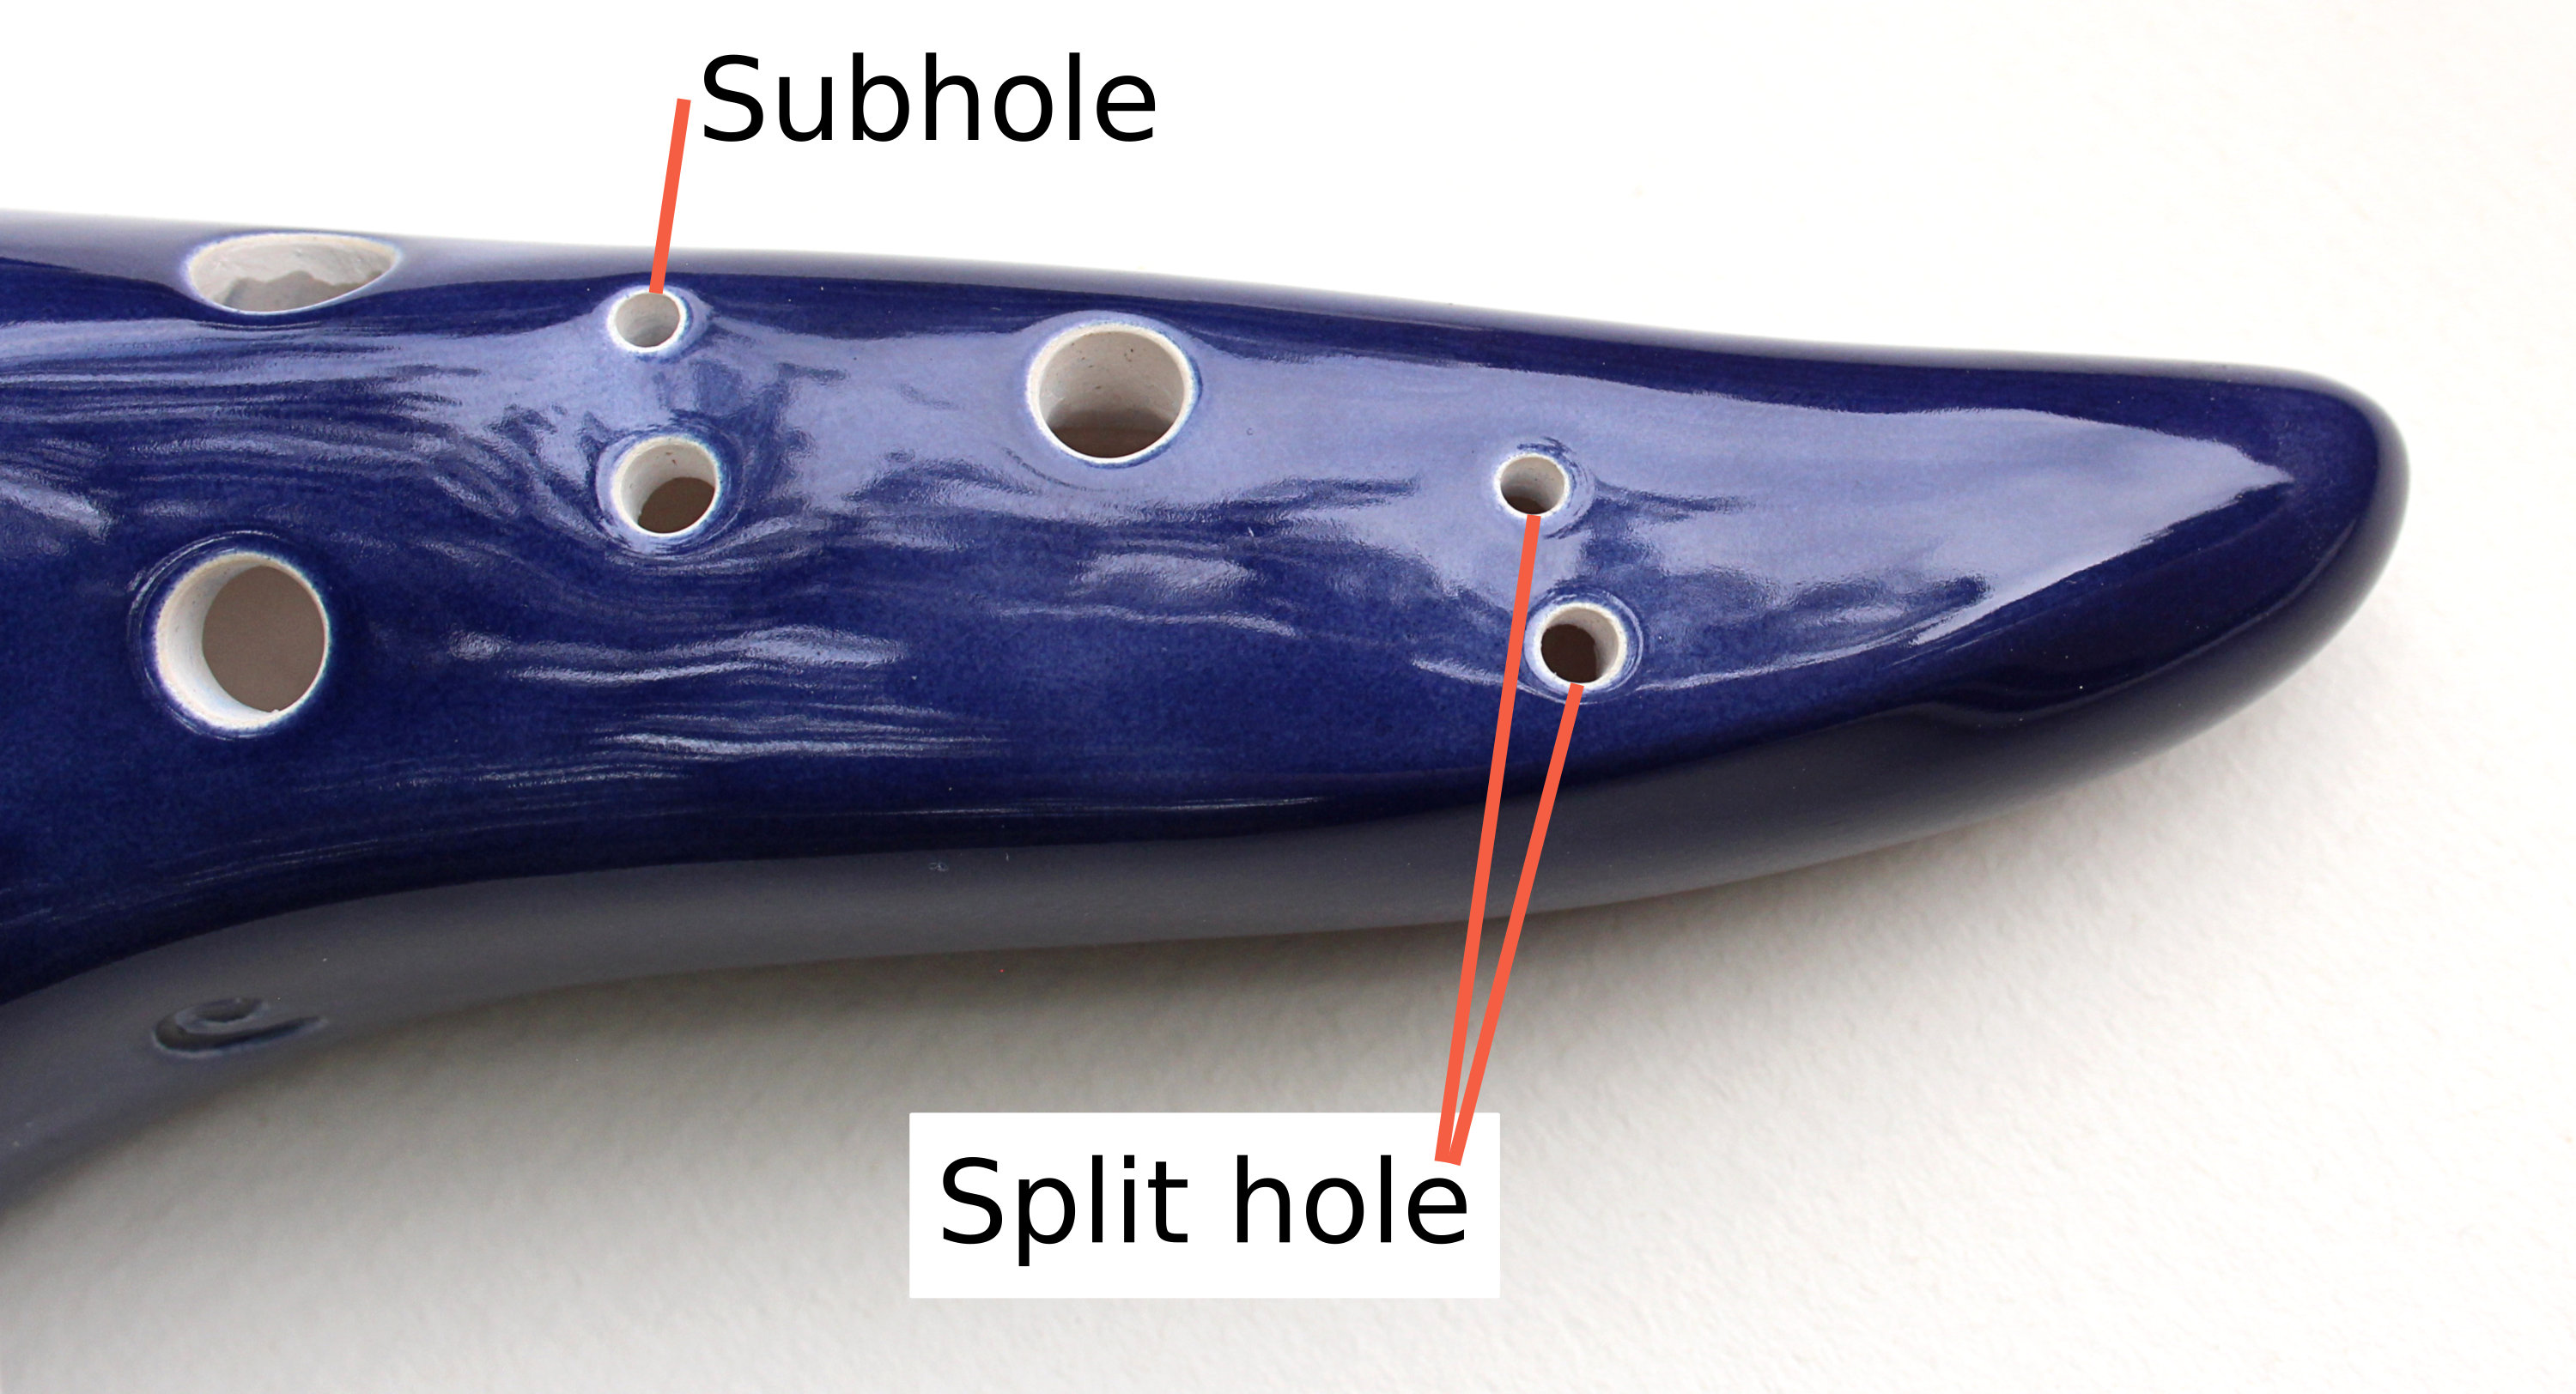 Ocarinas can have both subholes and split holes which look similar, but serve different functions. Subholes are holes that allow additional lower notes to be played, such as a B on an ocarina in C. Split holes are where a single hole has been split into two smaller holes to make an accidental like low C sharp easier to play. They are most often seen on 10 hole ocarinas